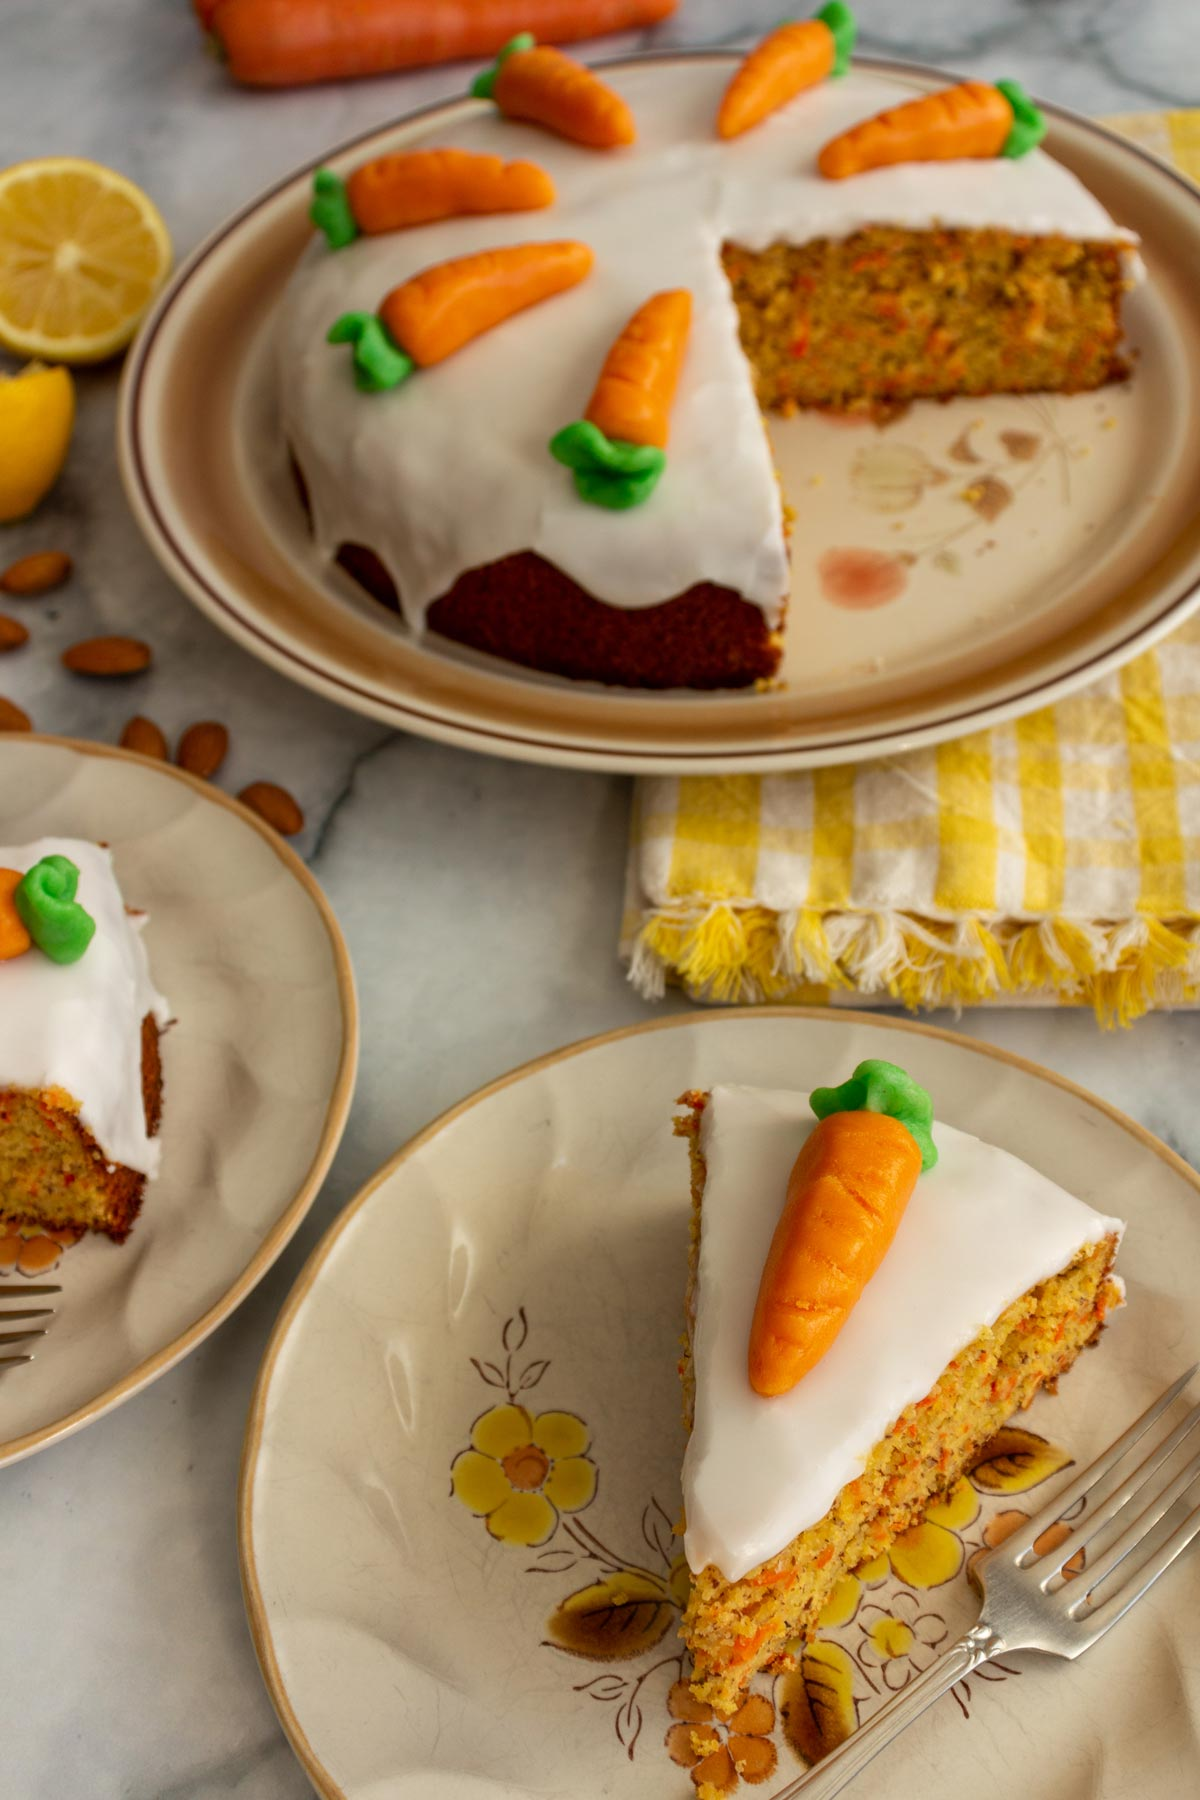 Sliced Swiss carrot cake on plates with remaining cake, lemons, and carrots in the background.